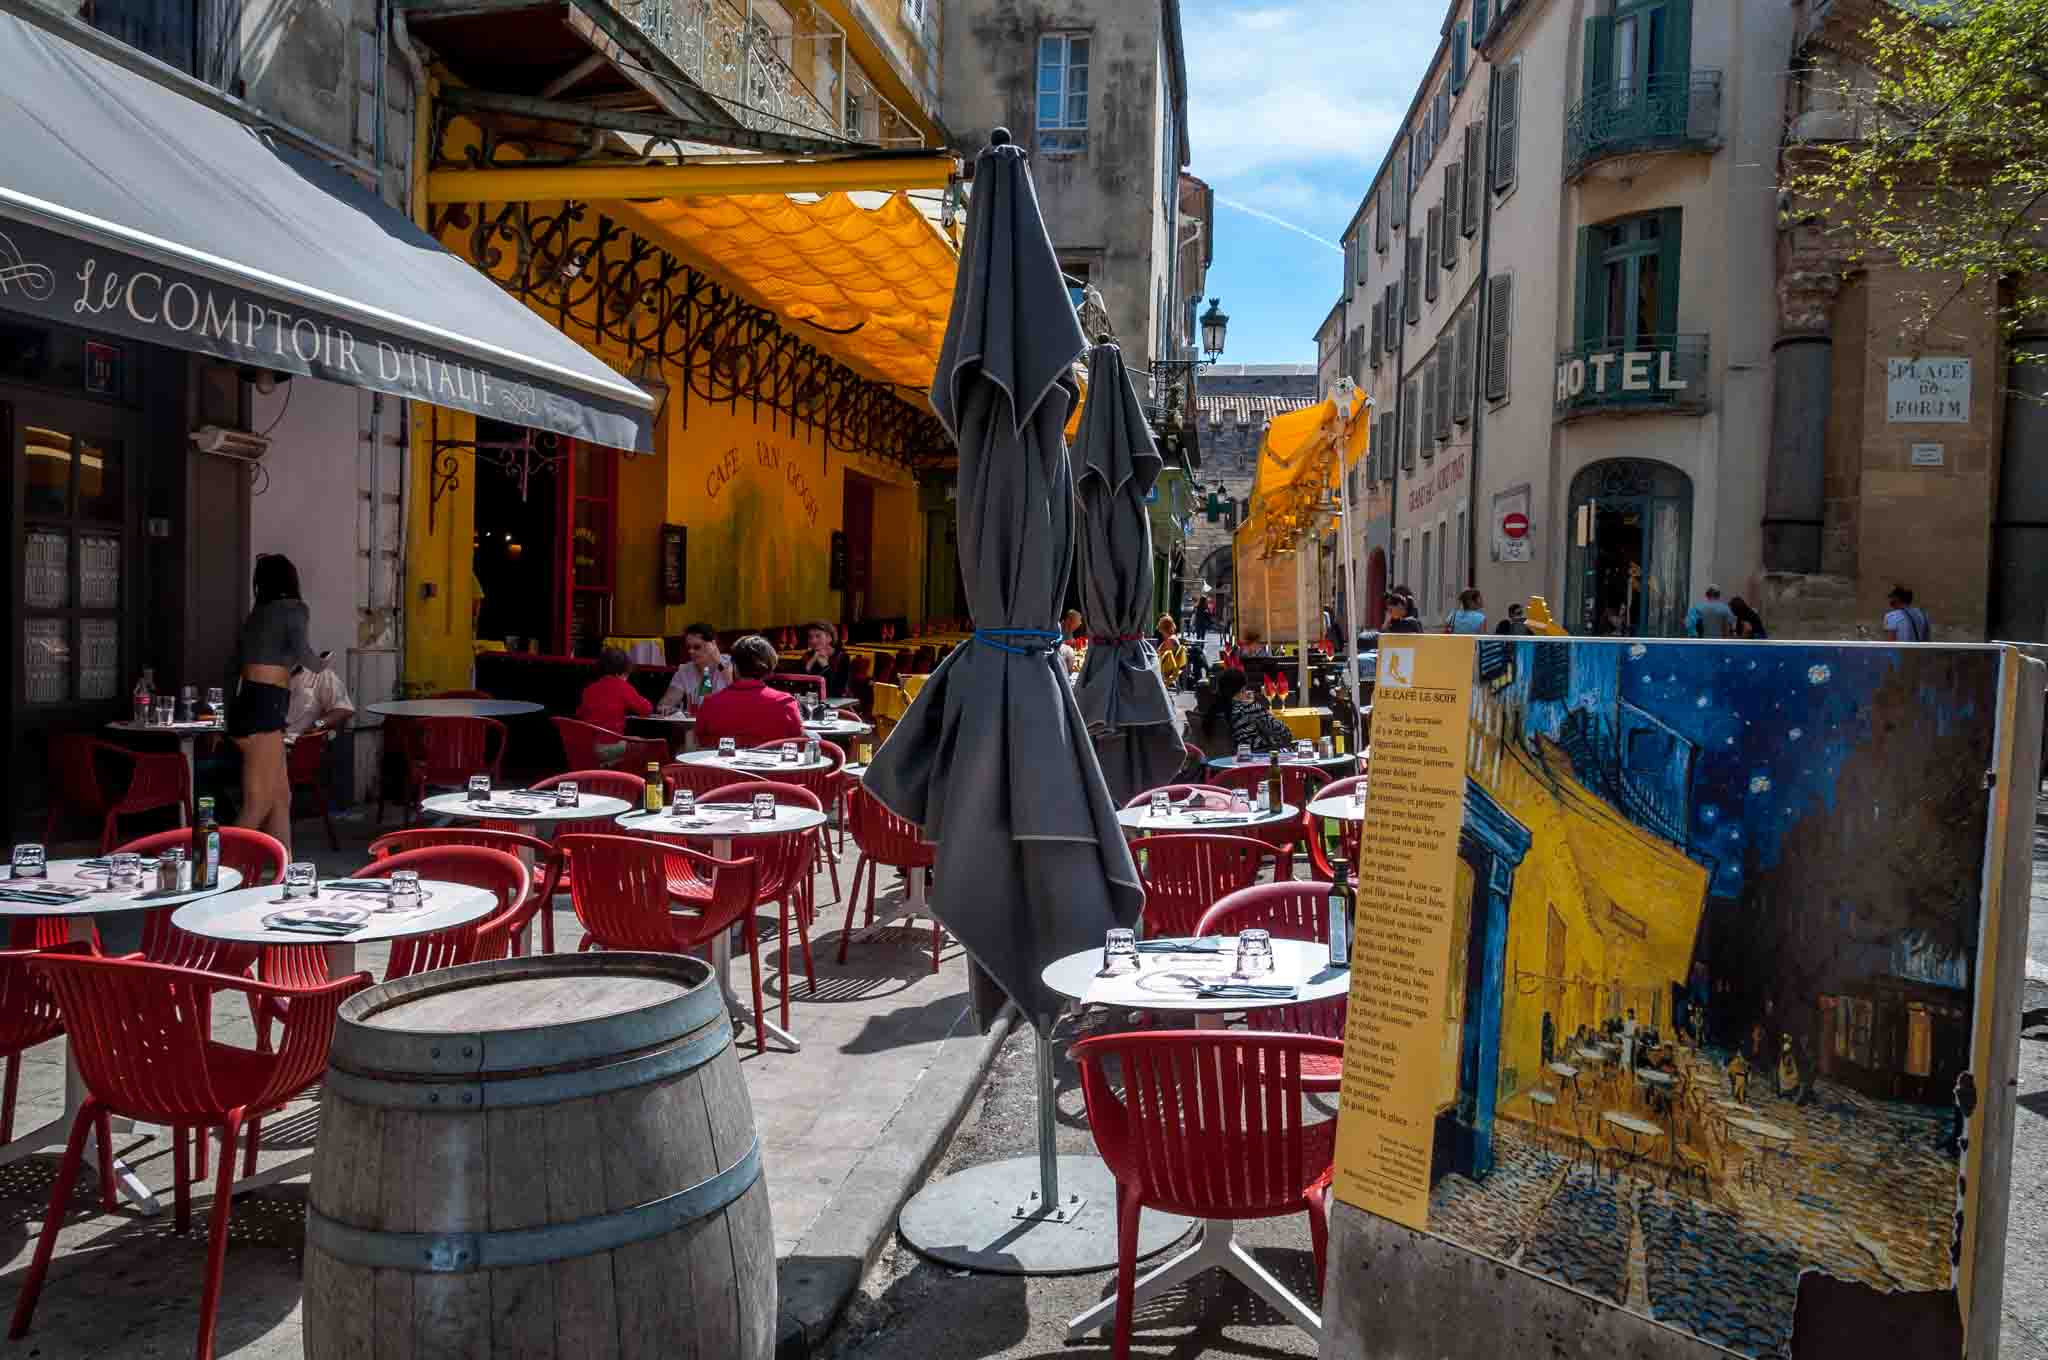 Sidewalk cafe alongside a painting of the site